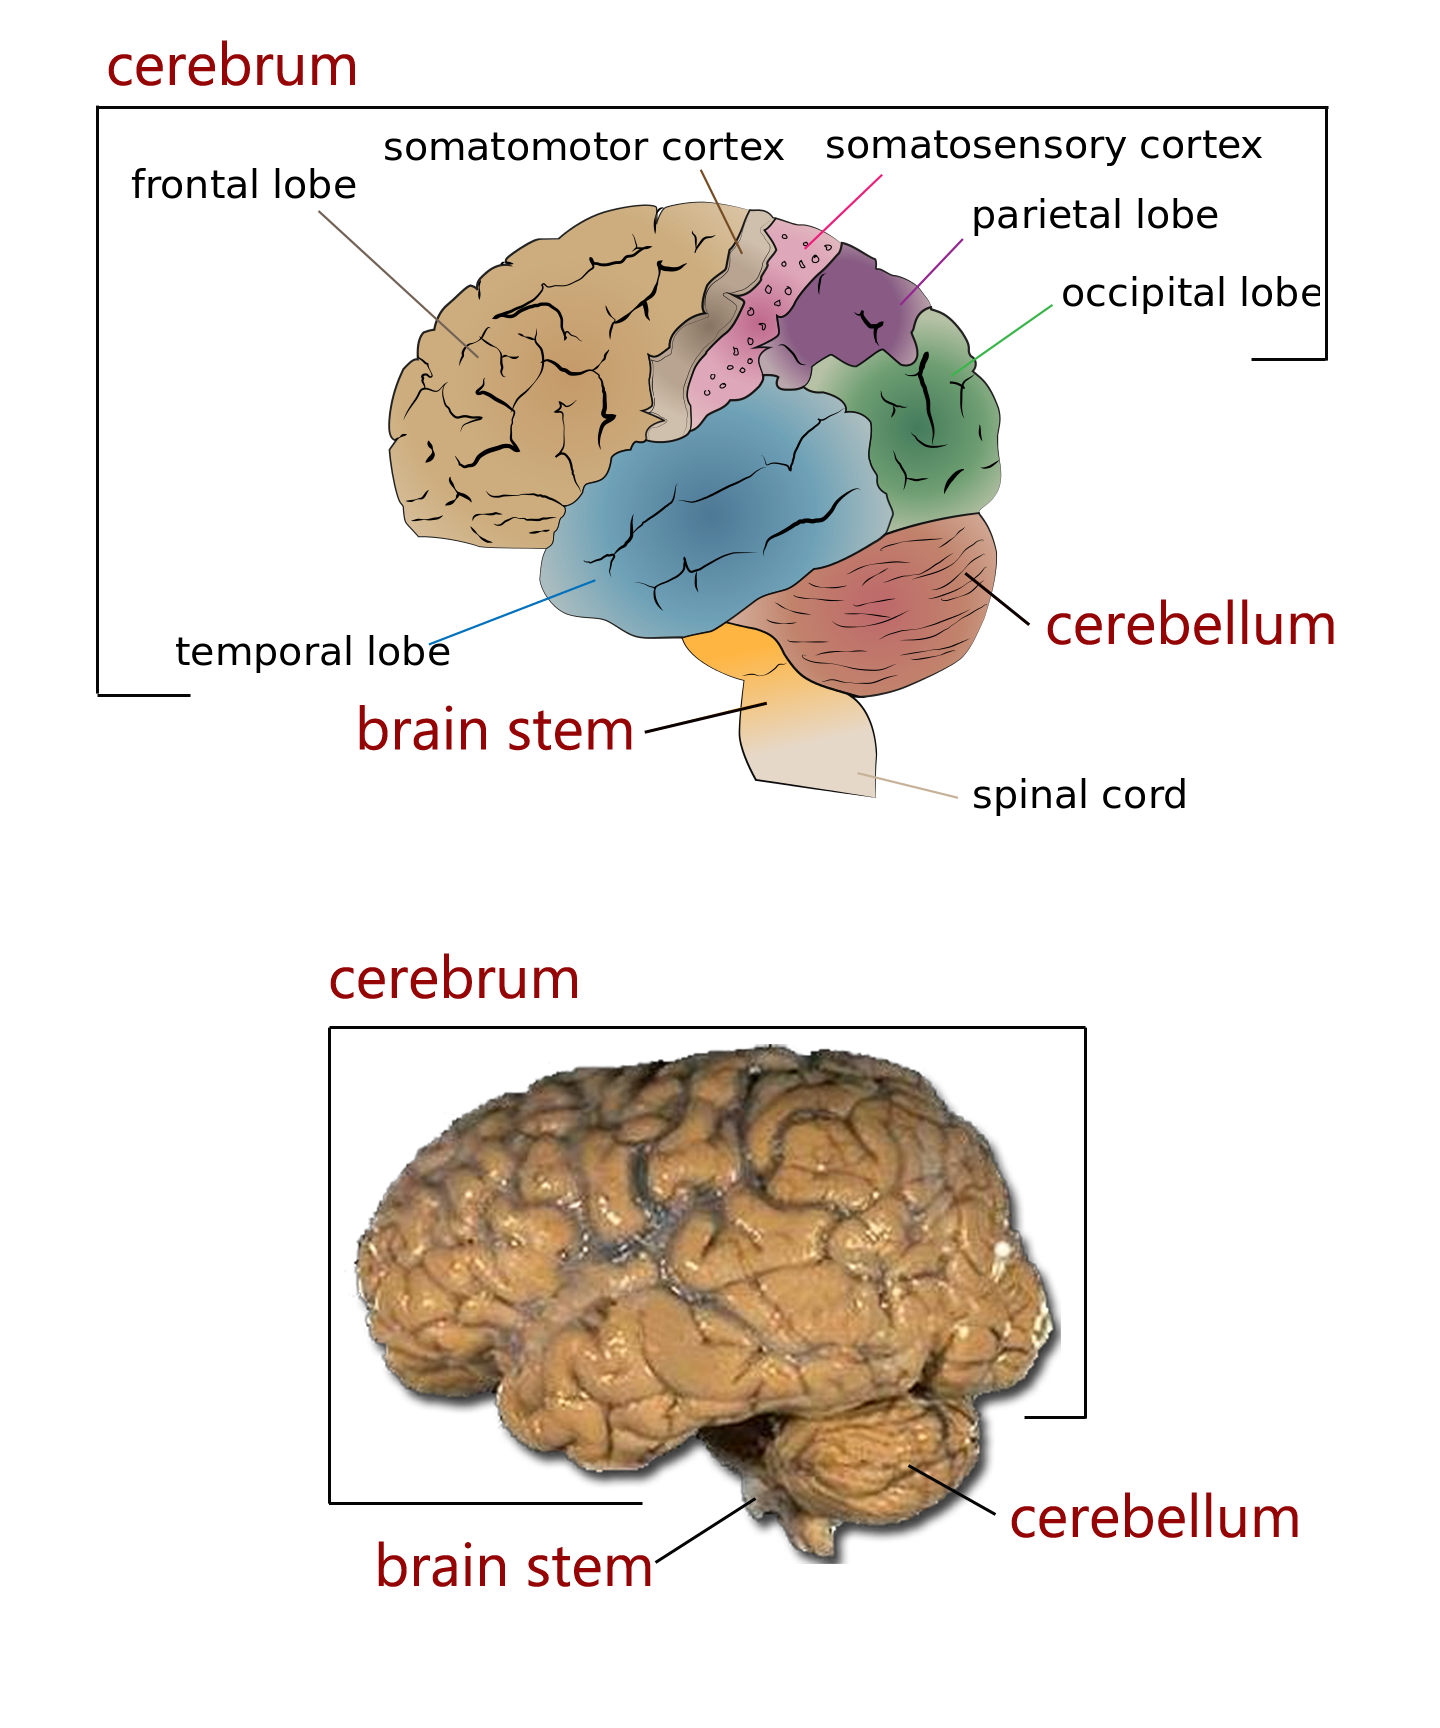 The four major regions of the brain | Human Anatomy and ...